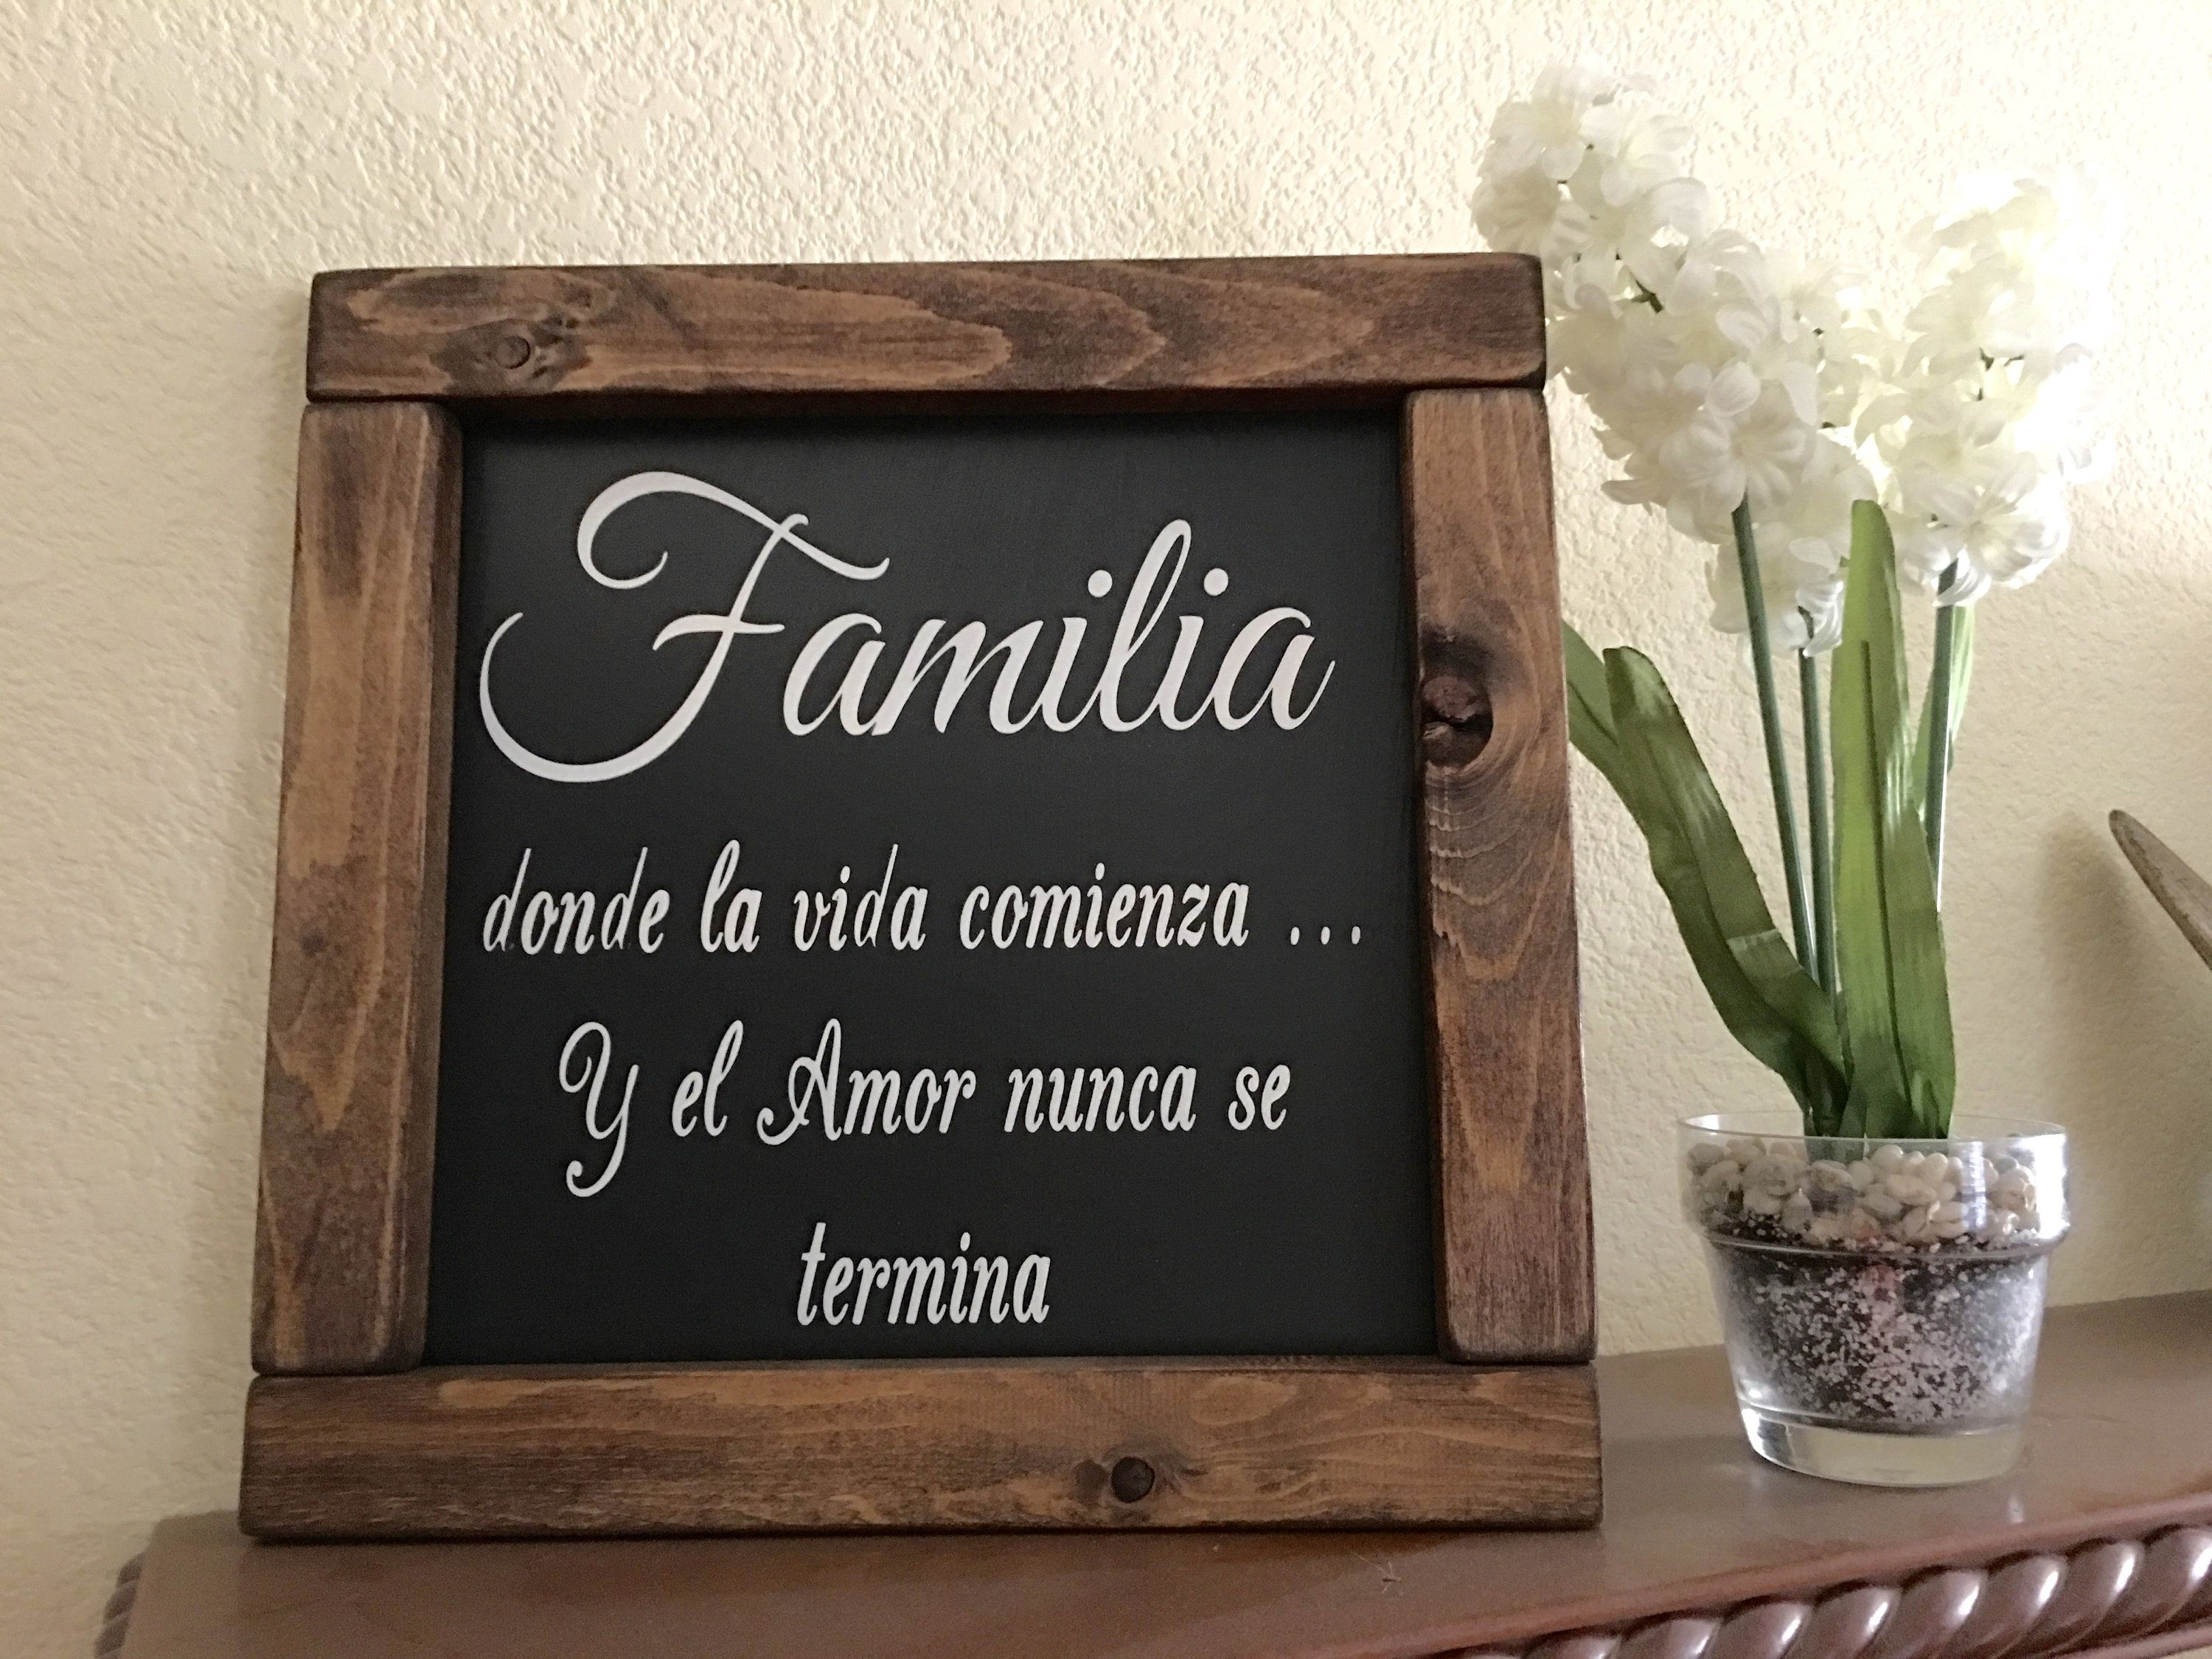 Farmhouse Signs Living Room Decor Wood Signs Spanish Home Decor Home Decor Spanish Decor Amor Familia Sign Familia Mexican Decor Spanish Home Decor Spanish Decor Wood Home Decor